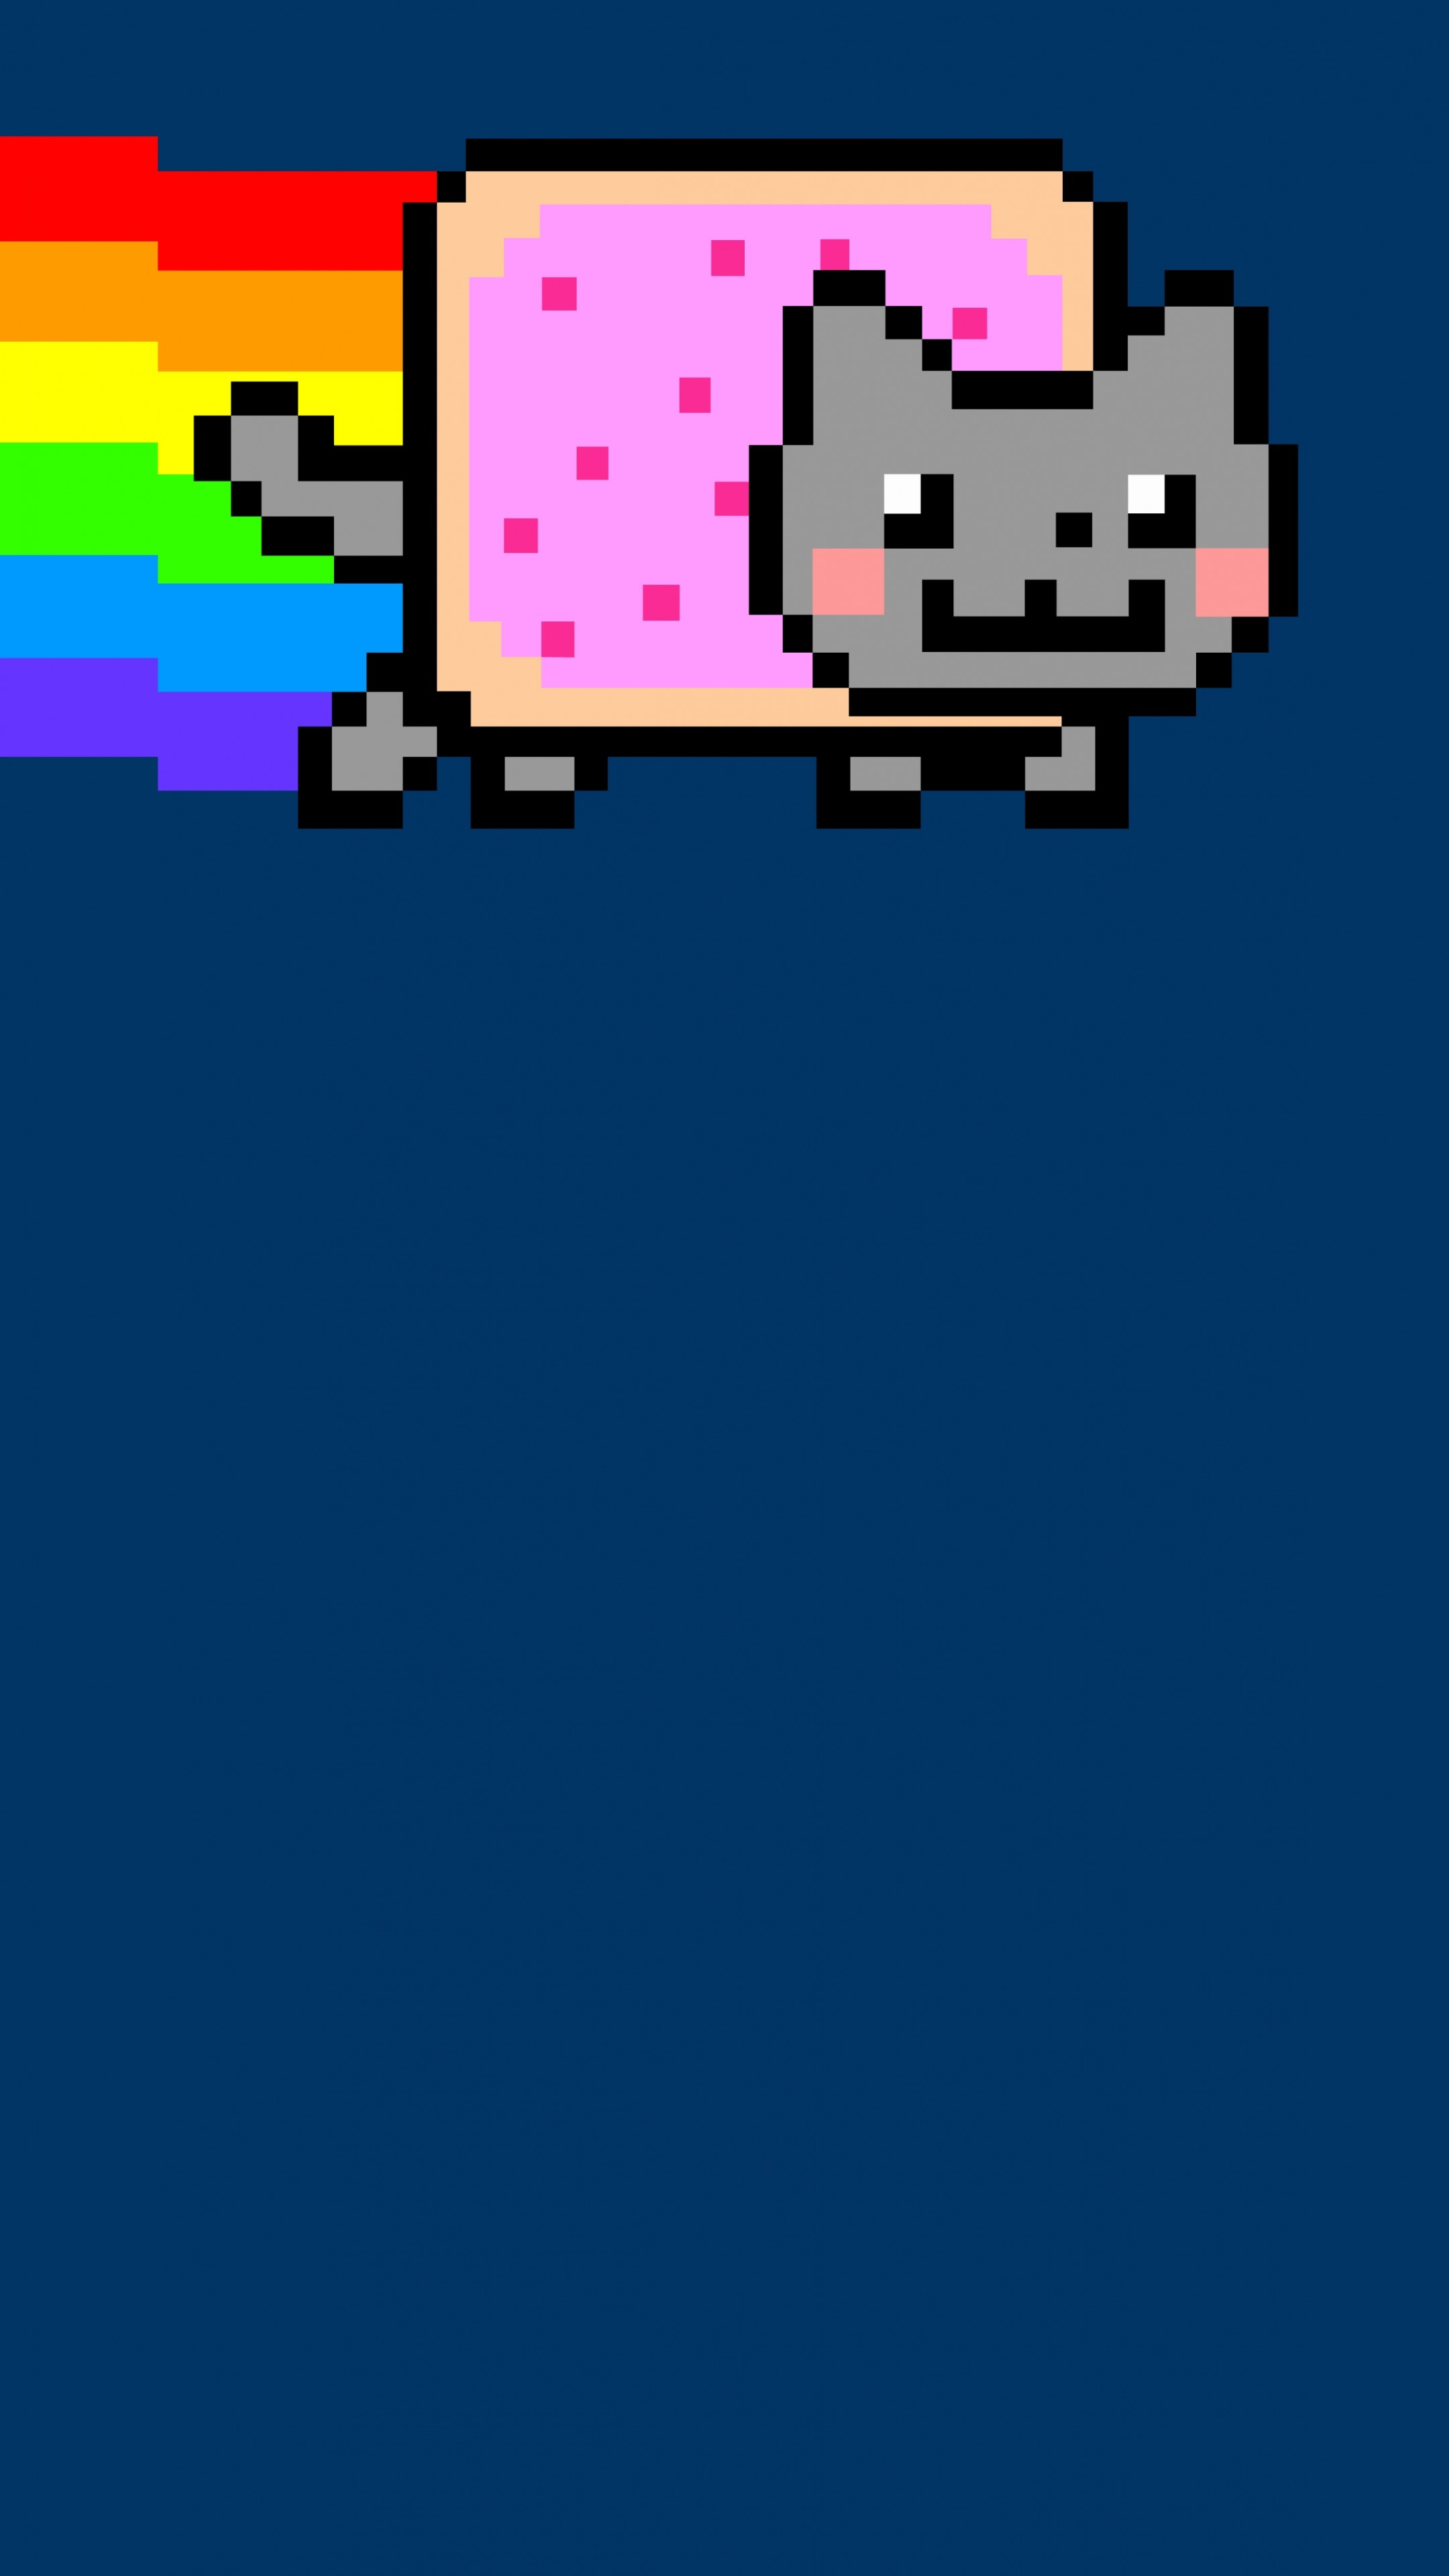 2160x3840 - Nyan Cat iPhone 25